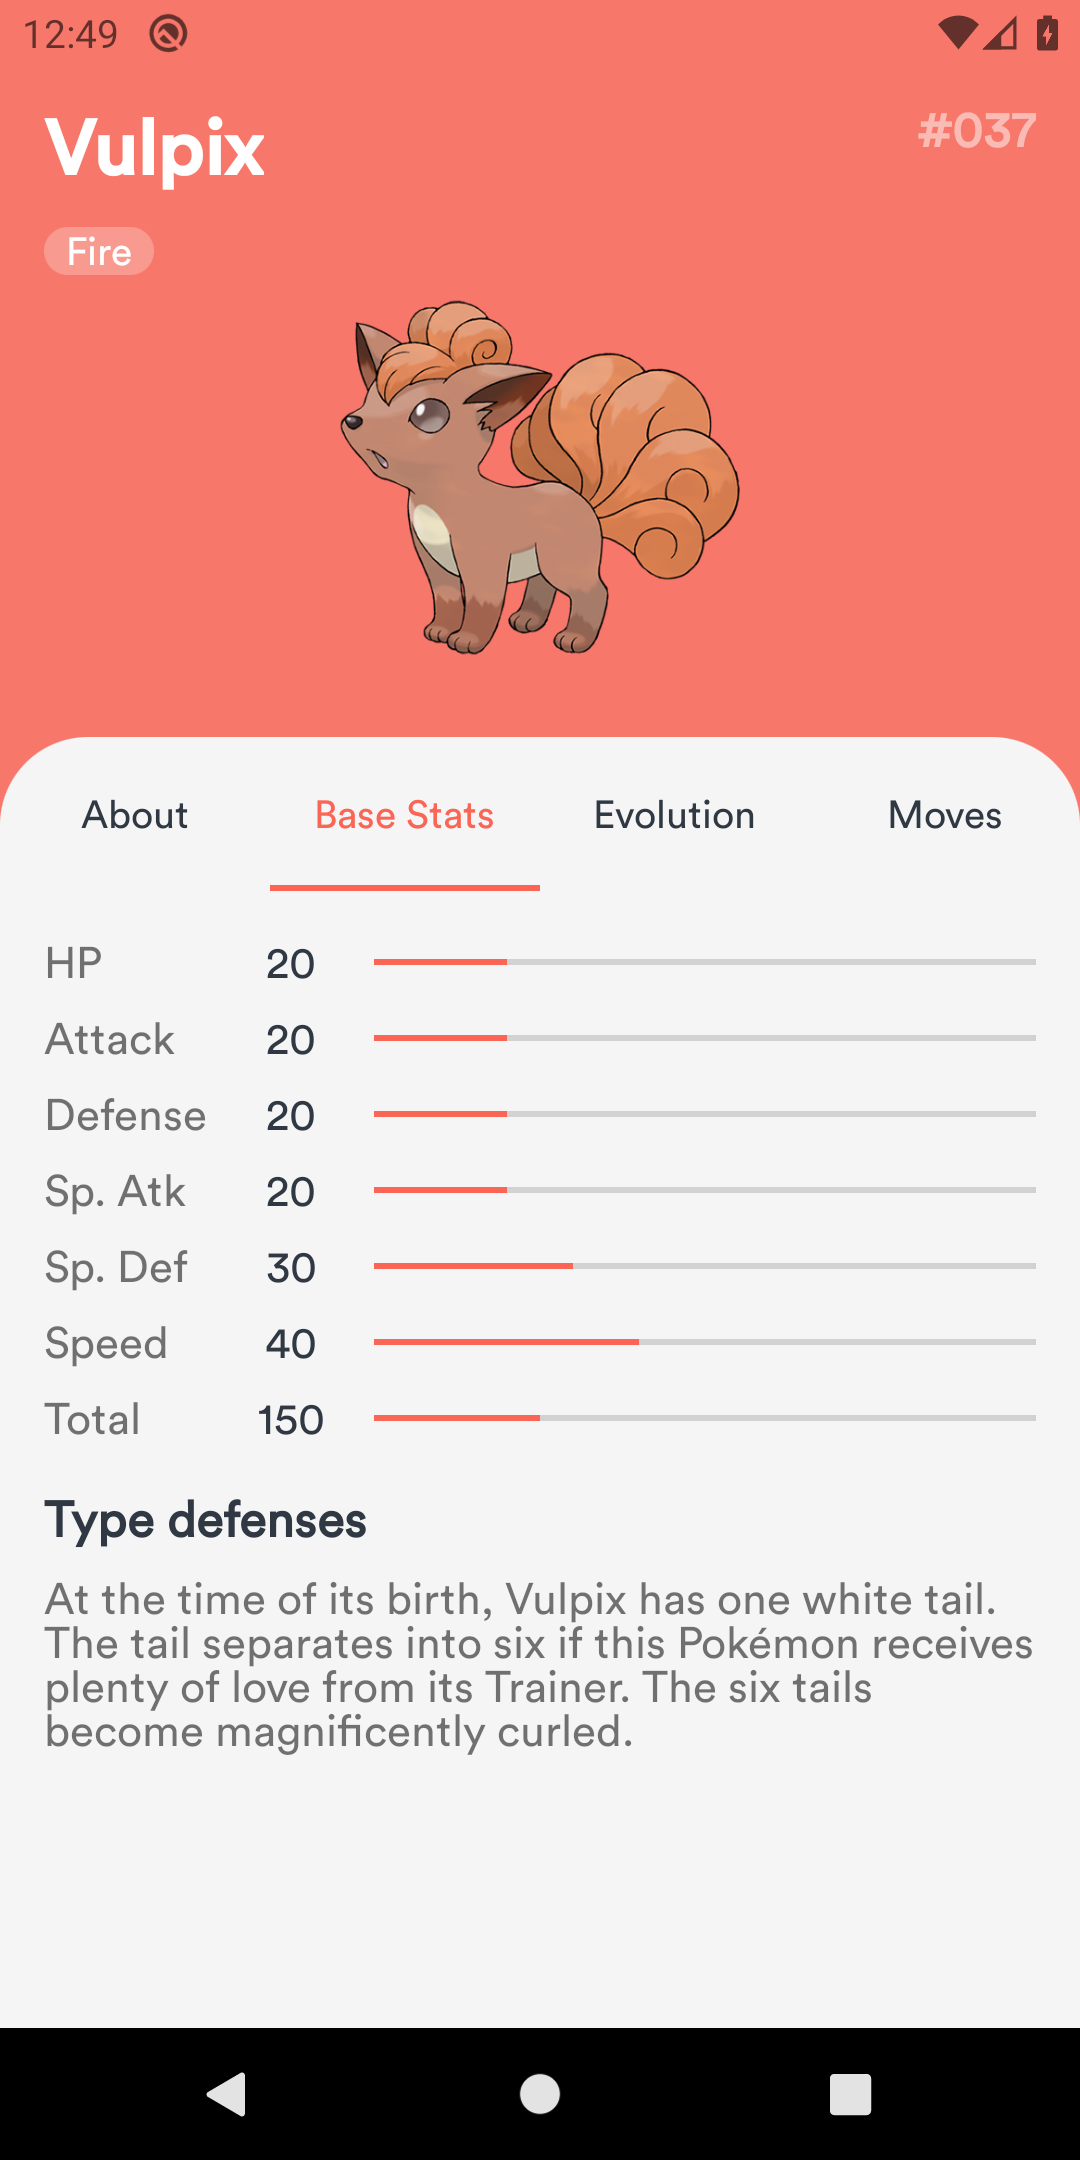 Pokemon Info - Base Stats